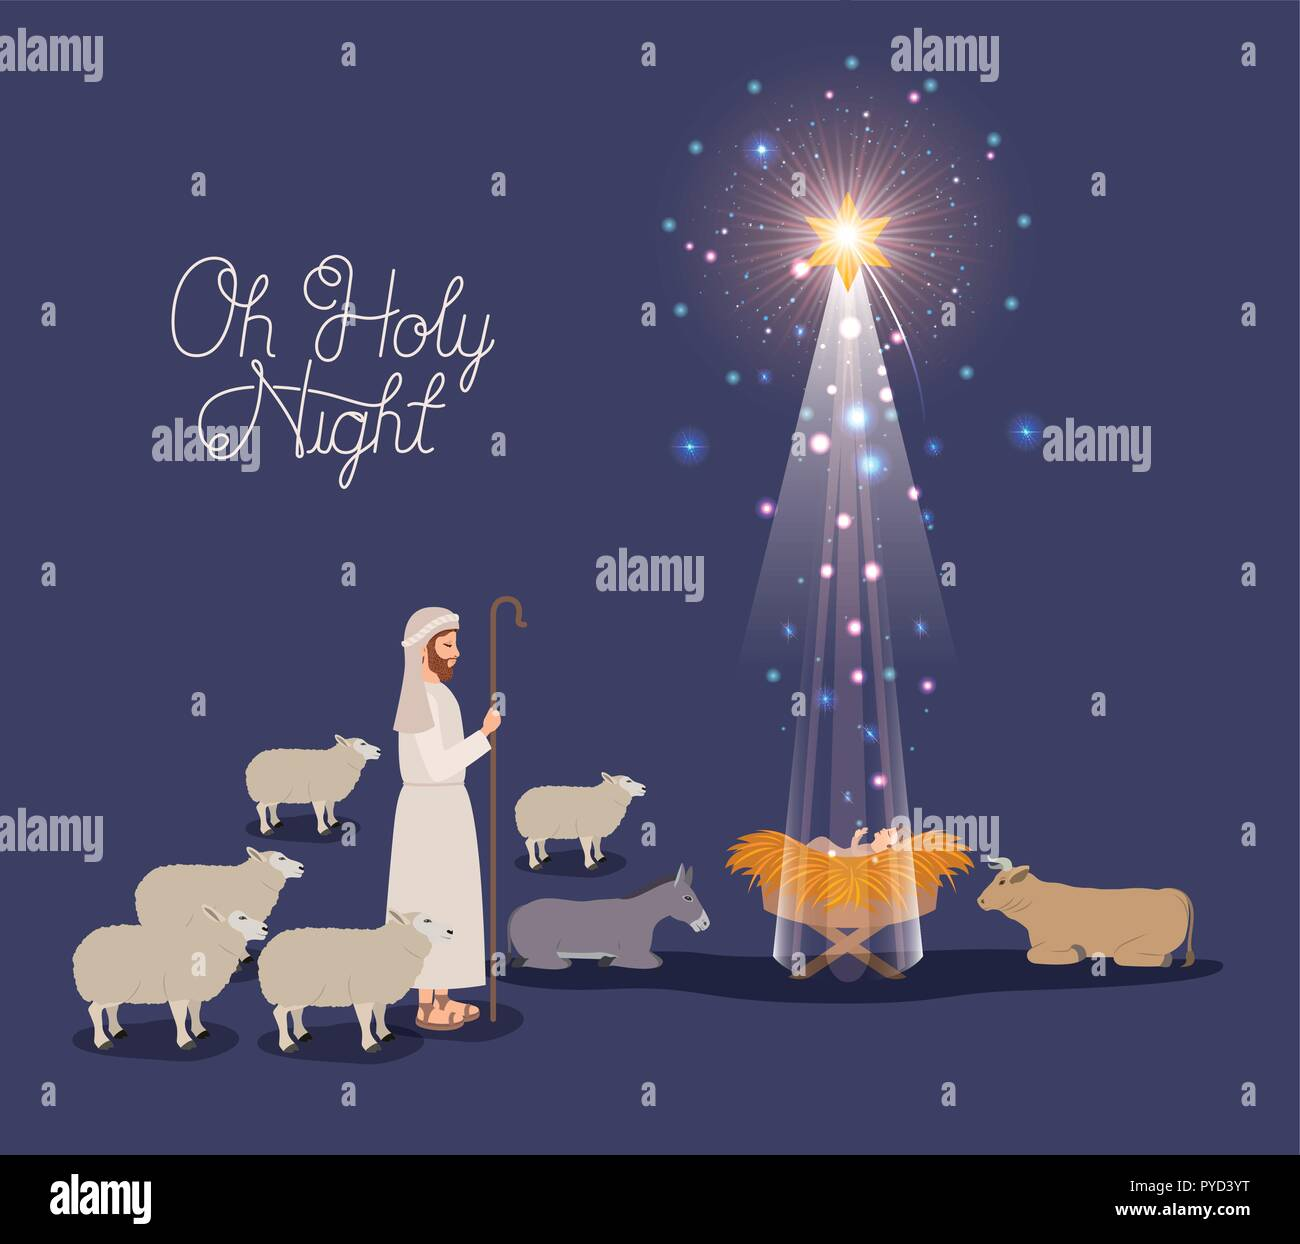 Merry Christmas Jesus.Merry Christmas Card With Jesus Baby And Sheeper Stock